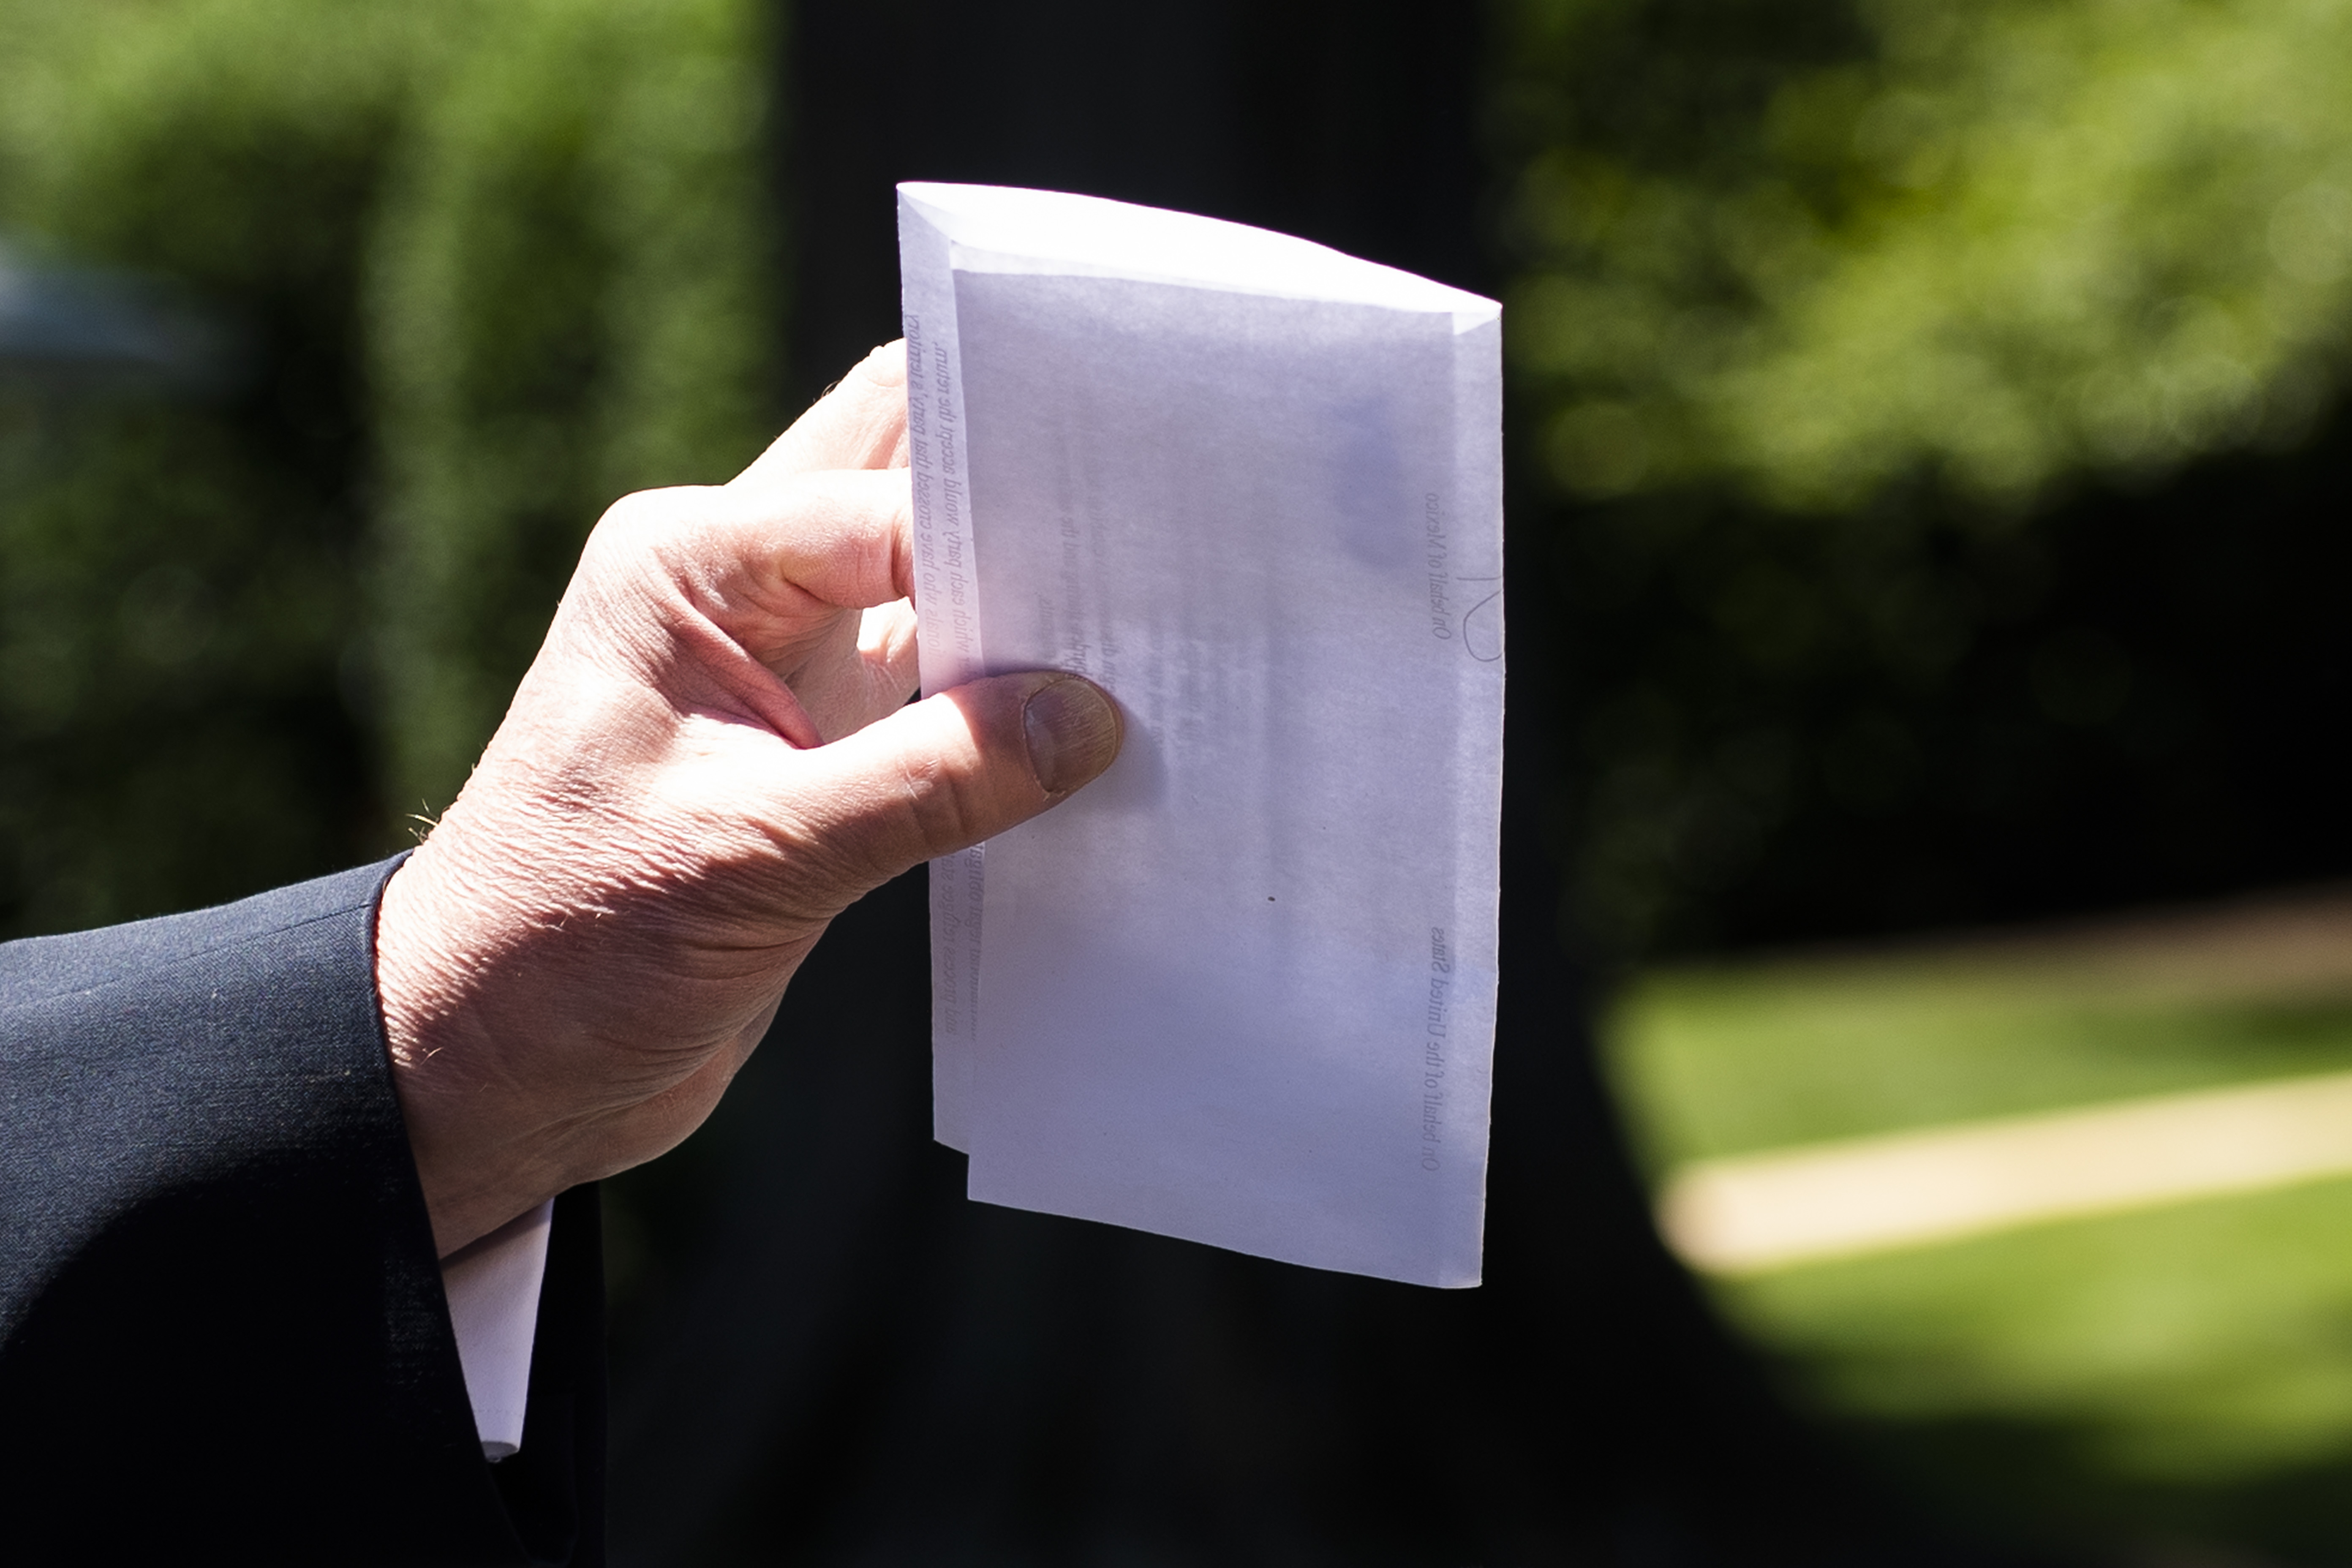 US President Donald Trump holds piece of paper saying its his deal with Mexico as he speaks with reporters at the White House, in Washington, DC, on June 11, 2019. - Trump did not show the paper to reporters. (Photo by Jim WATSON / AFP) (Photo credit should read JIM WATSON/AFP/Getty Images)